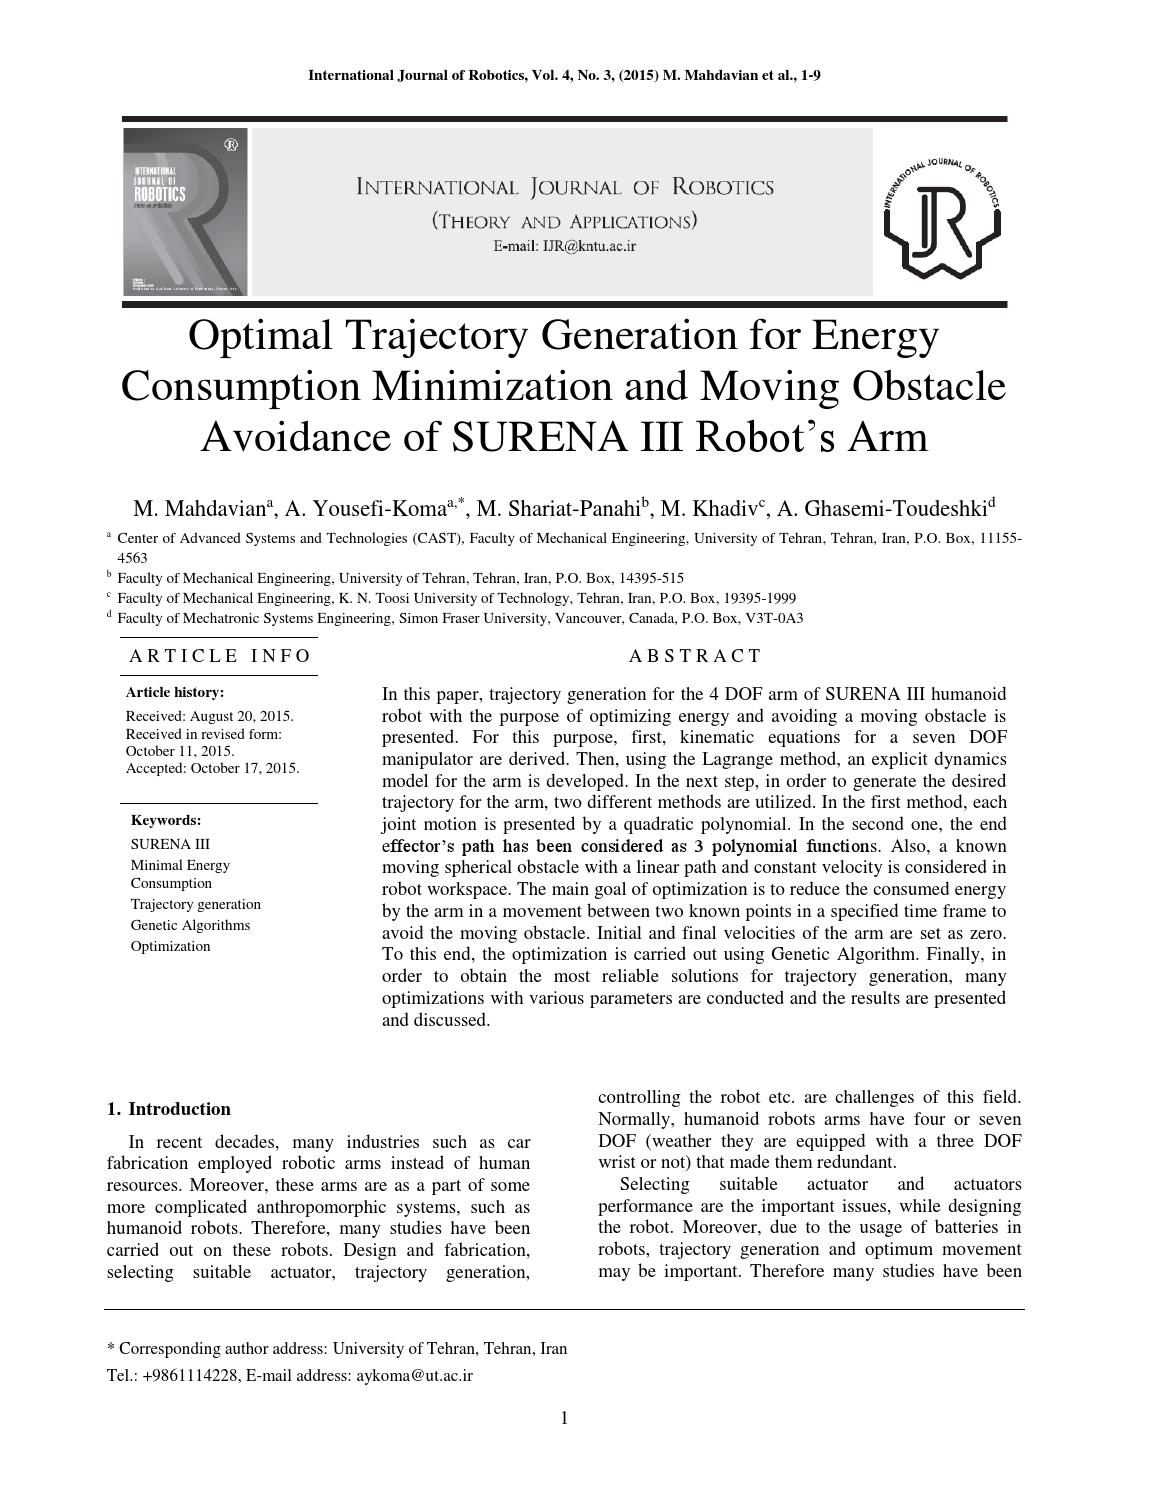 Optimal Trajectory Generation for Energy Consumption Minimization and  Moving Obstacle Avoidance of S